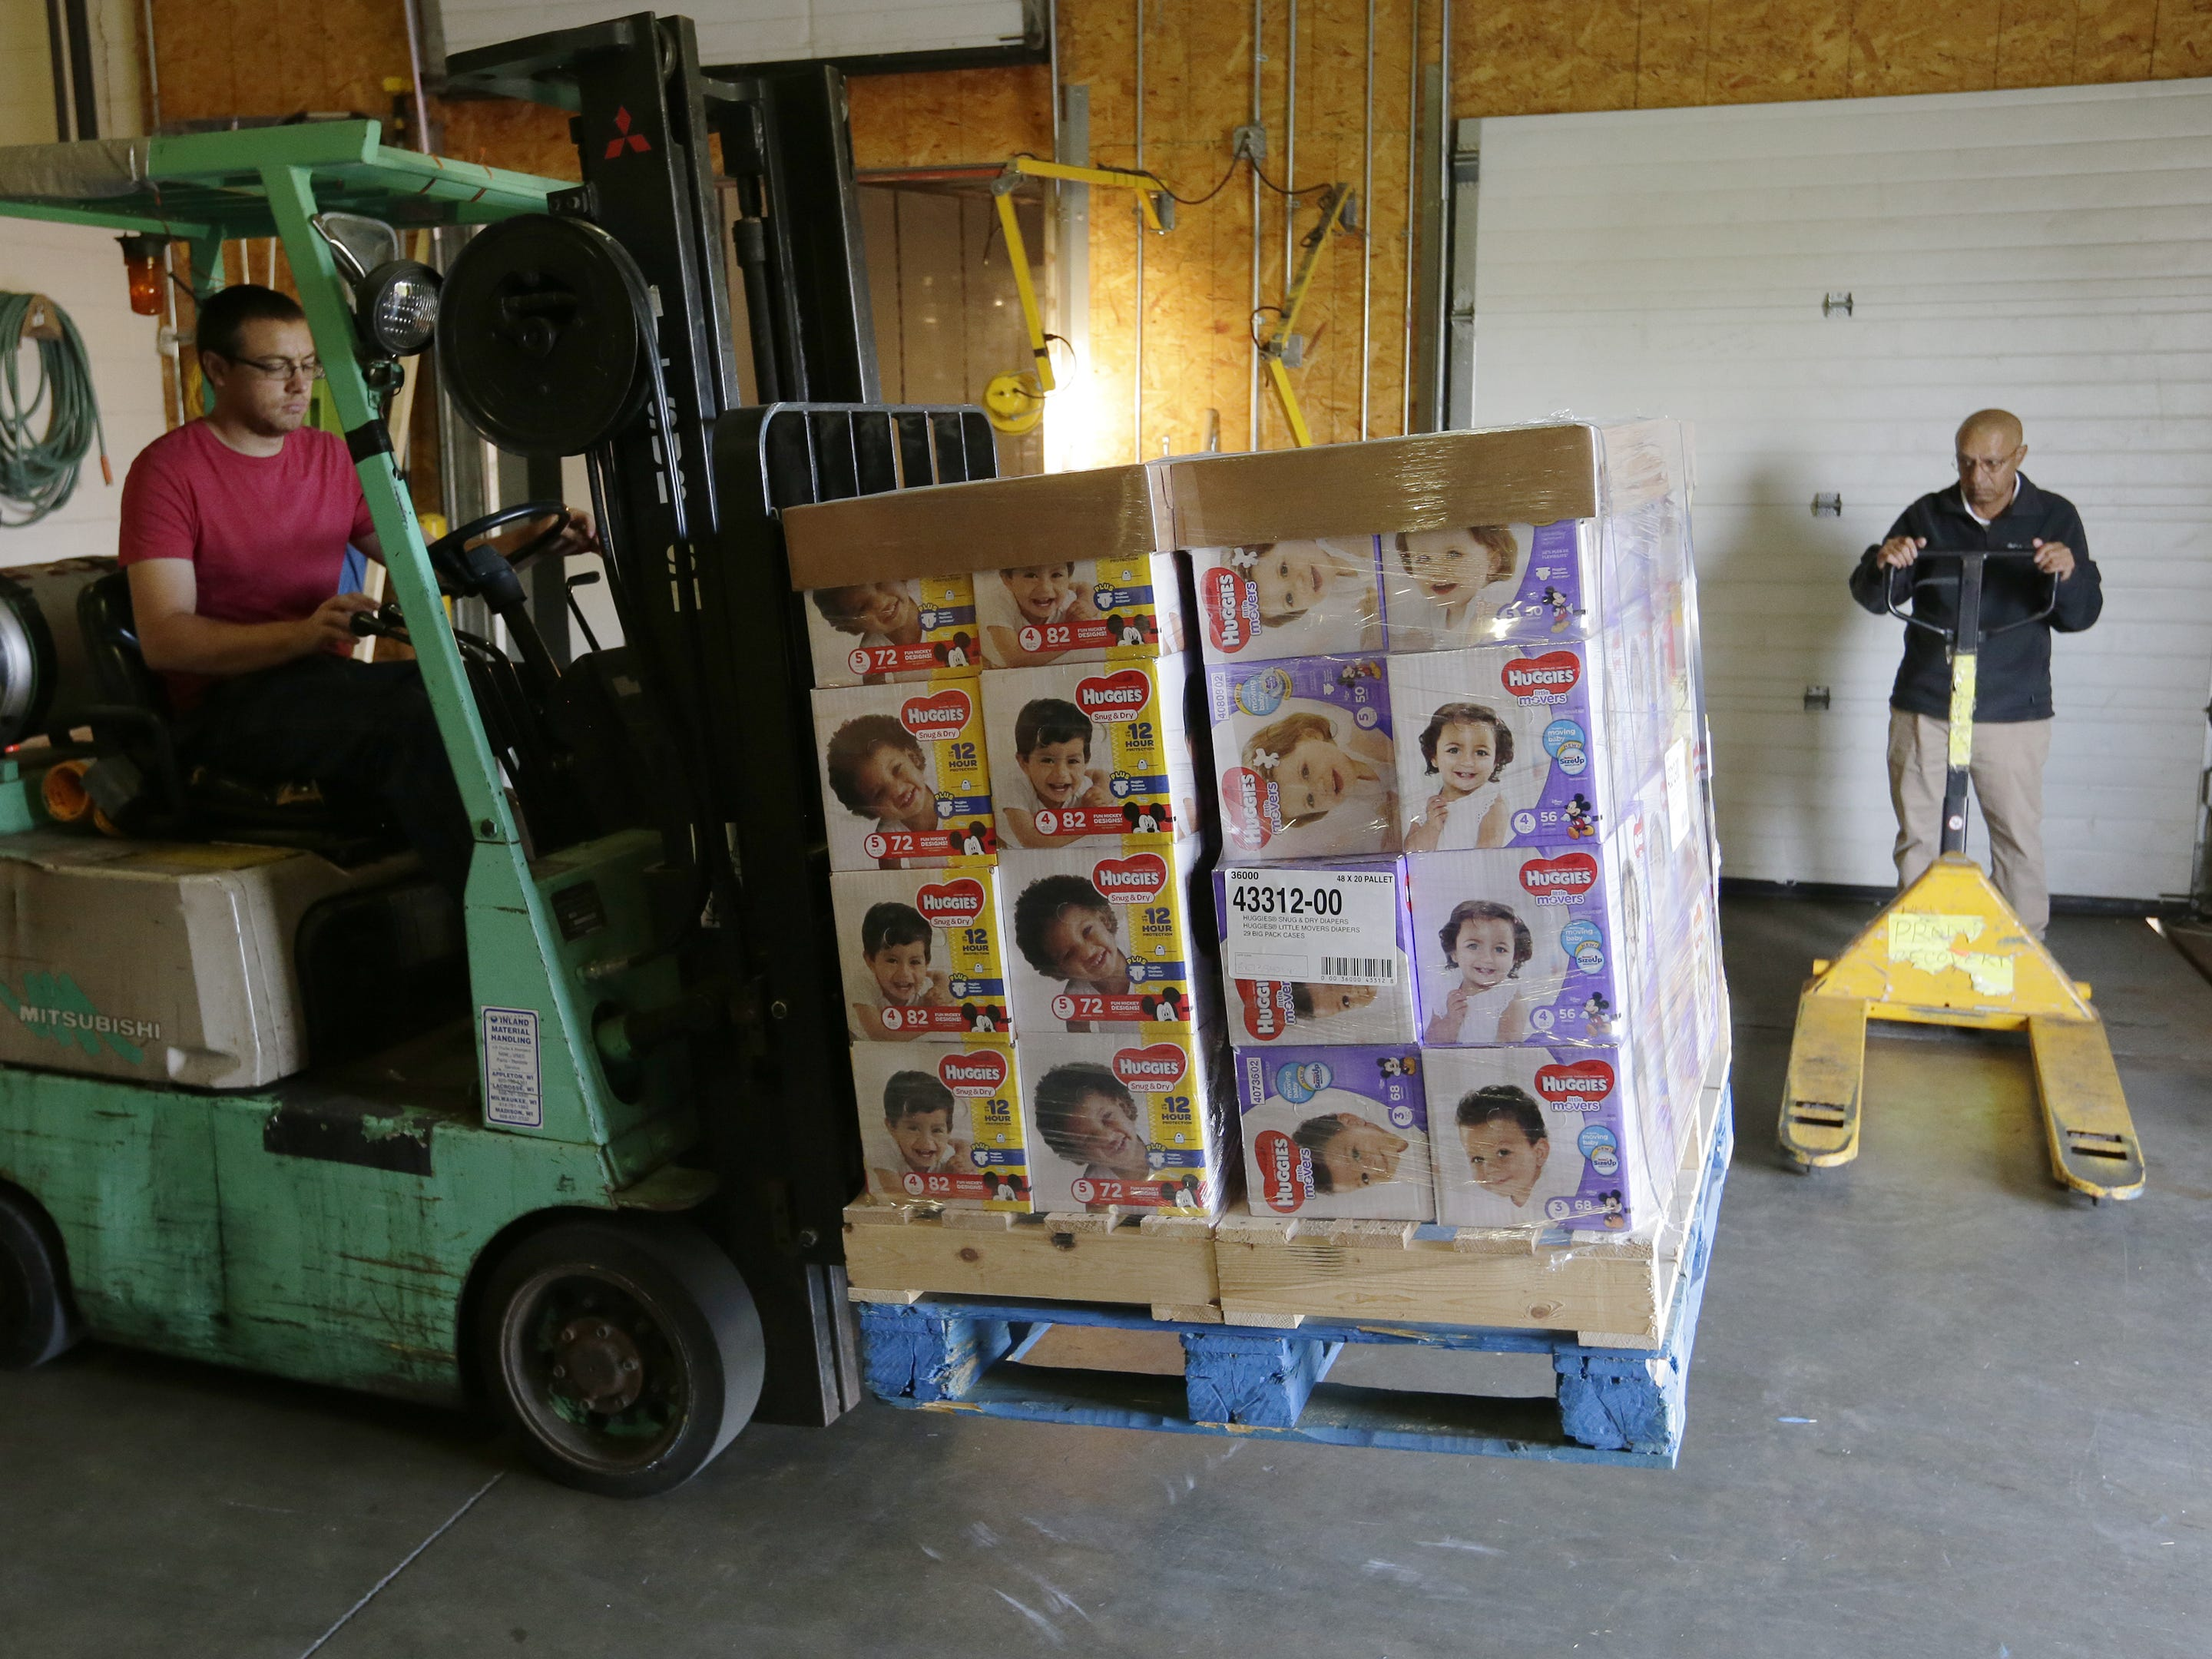 Brandon Wittman of the Oshkosh Area Community Food Pantry unloads diapers as Hussian Sattar of Father Carr's Place 2B waits to take them outside for distribution Monday, Sept. 24, 2018, in Oshkosh. USA TODAY NETWORK-Wisconsin and Kimberly-Clark Corp. donated 100,400 diapers to nine food pantries in the area.